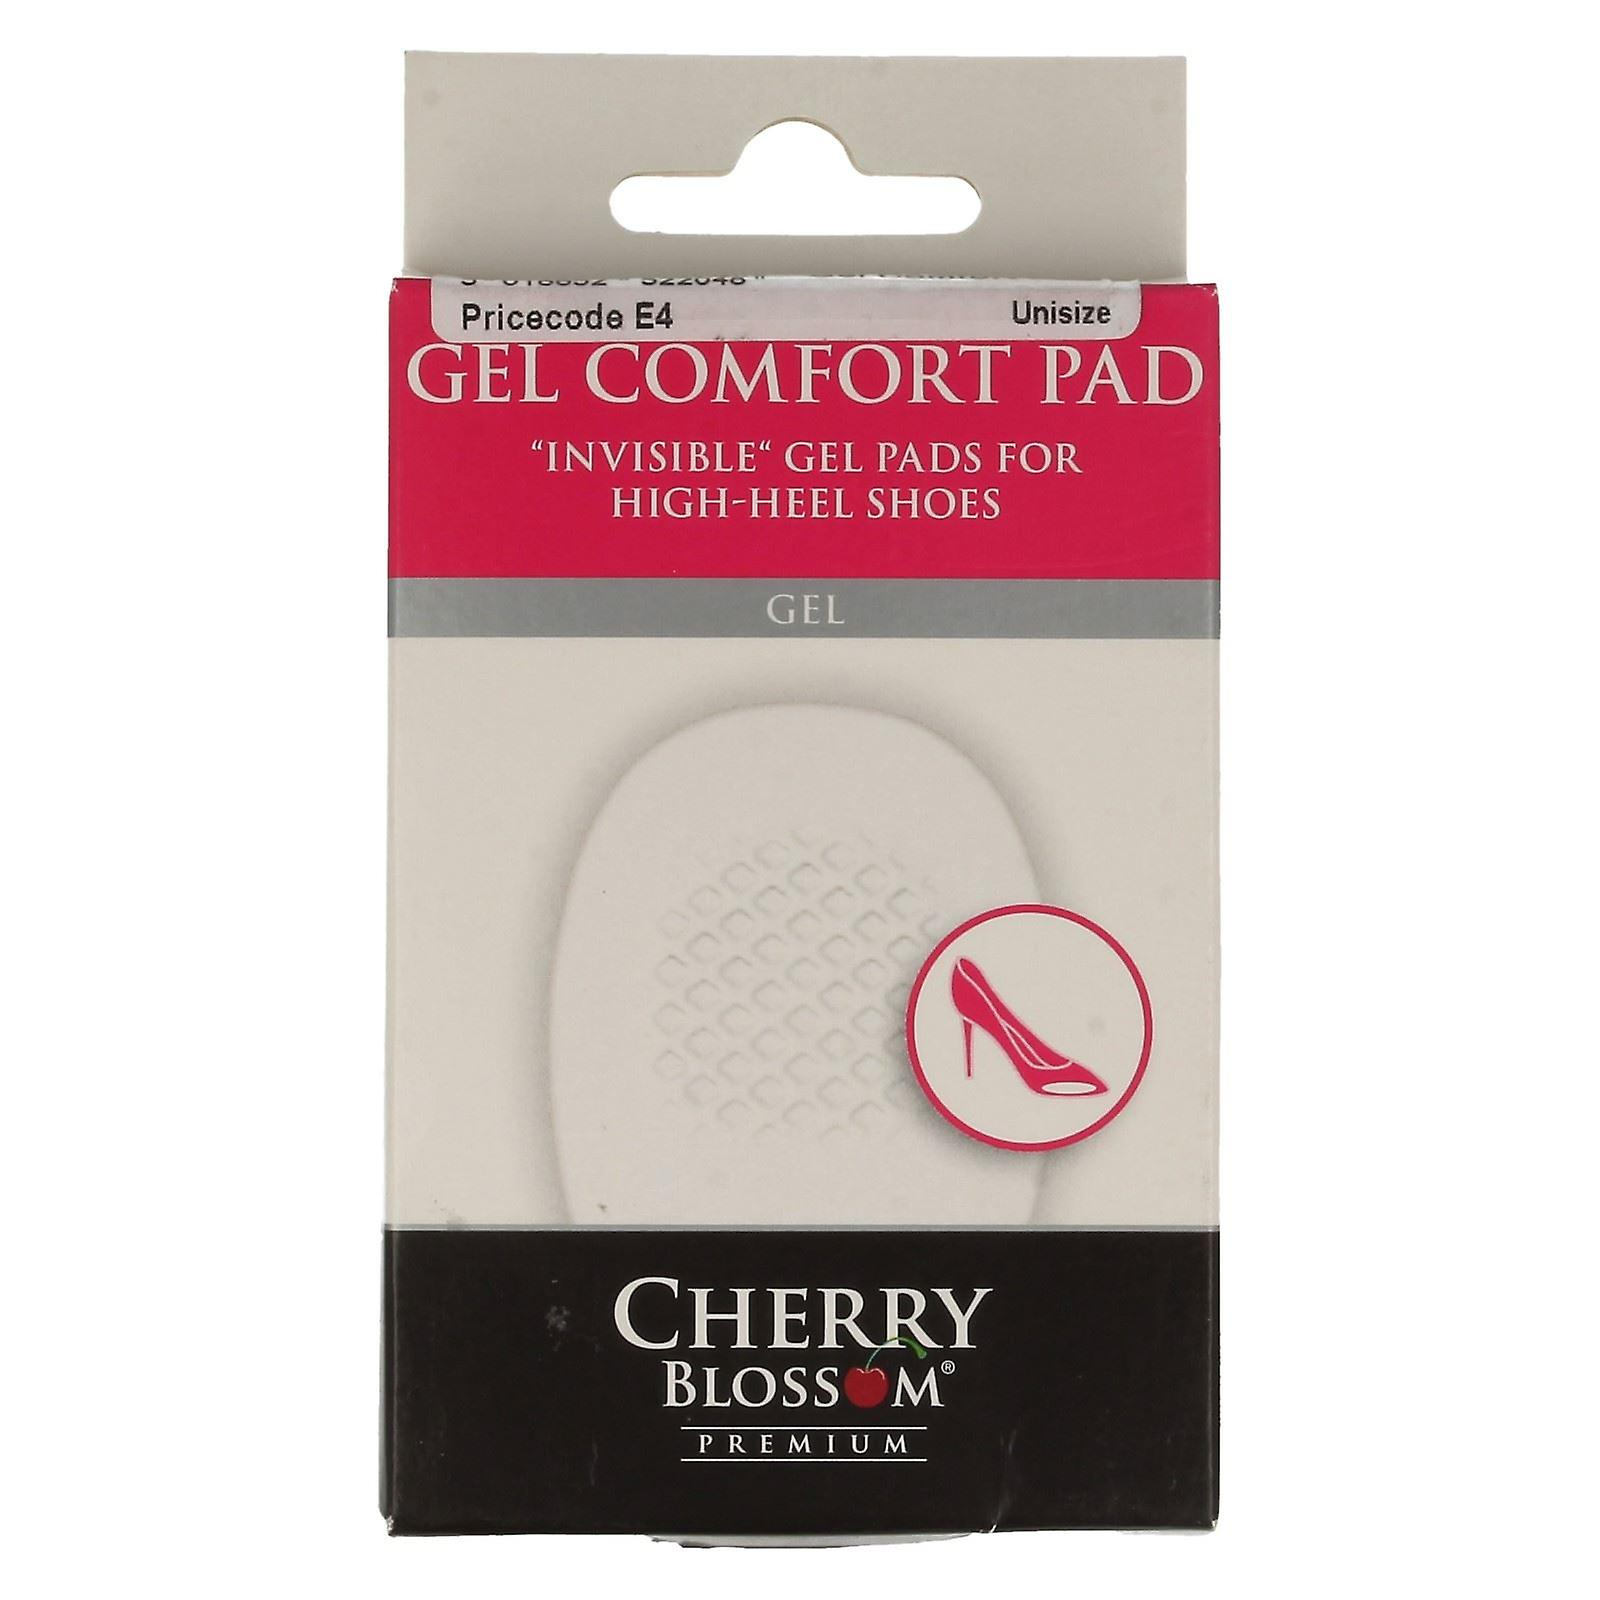 Cherry Blossom for Invisible Gel Comfort Pad for Blossom High-Heel Shoes 08cb2e